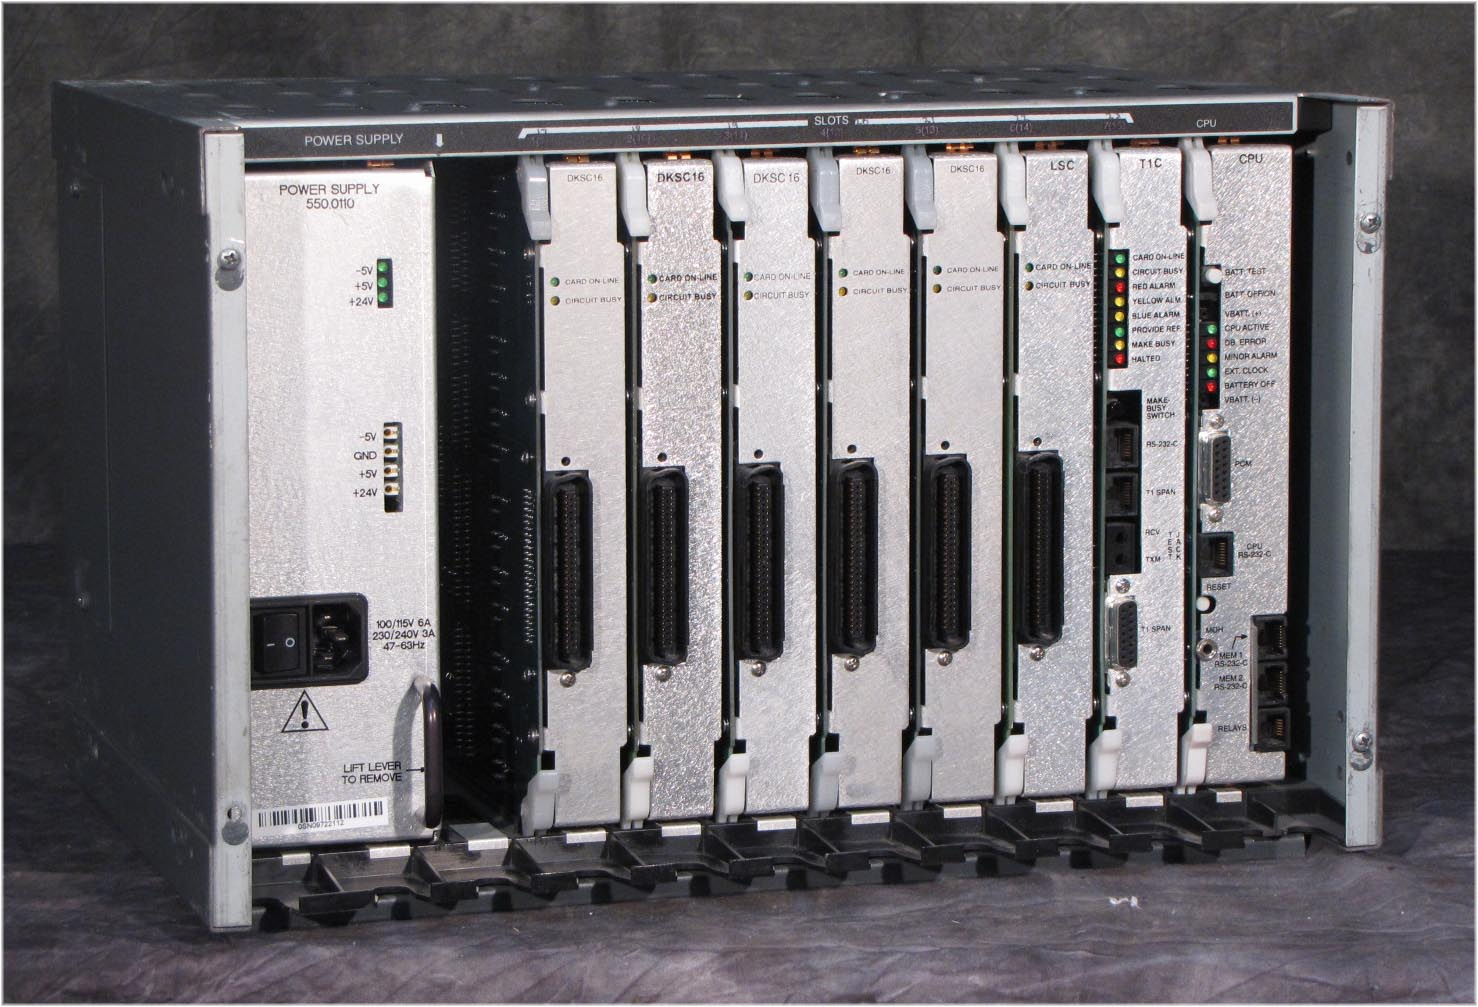 Inter-Tel Mitel Axxess PBX KSU chassis with cards